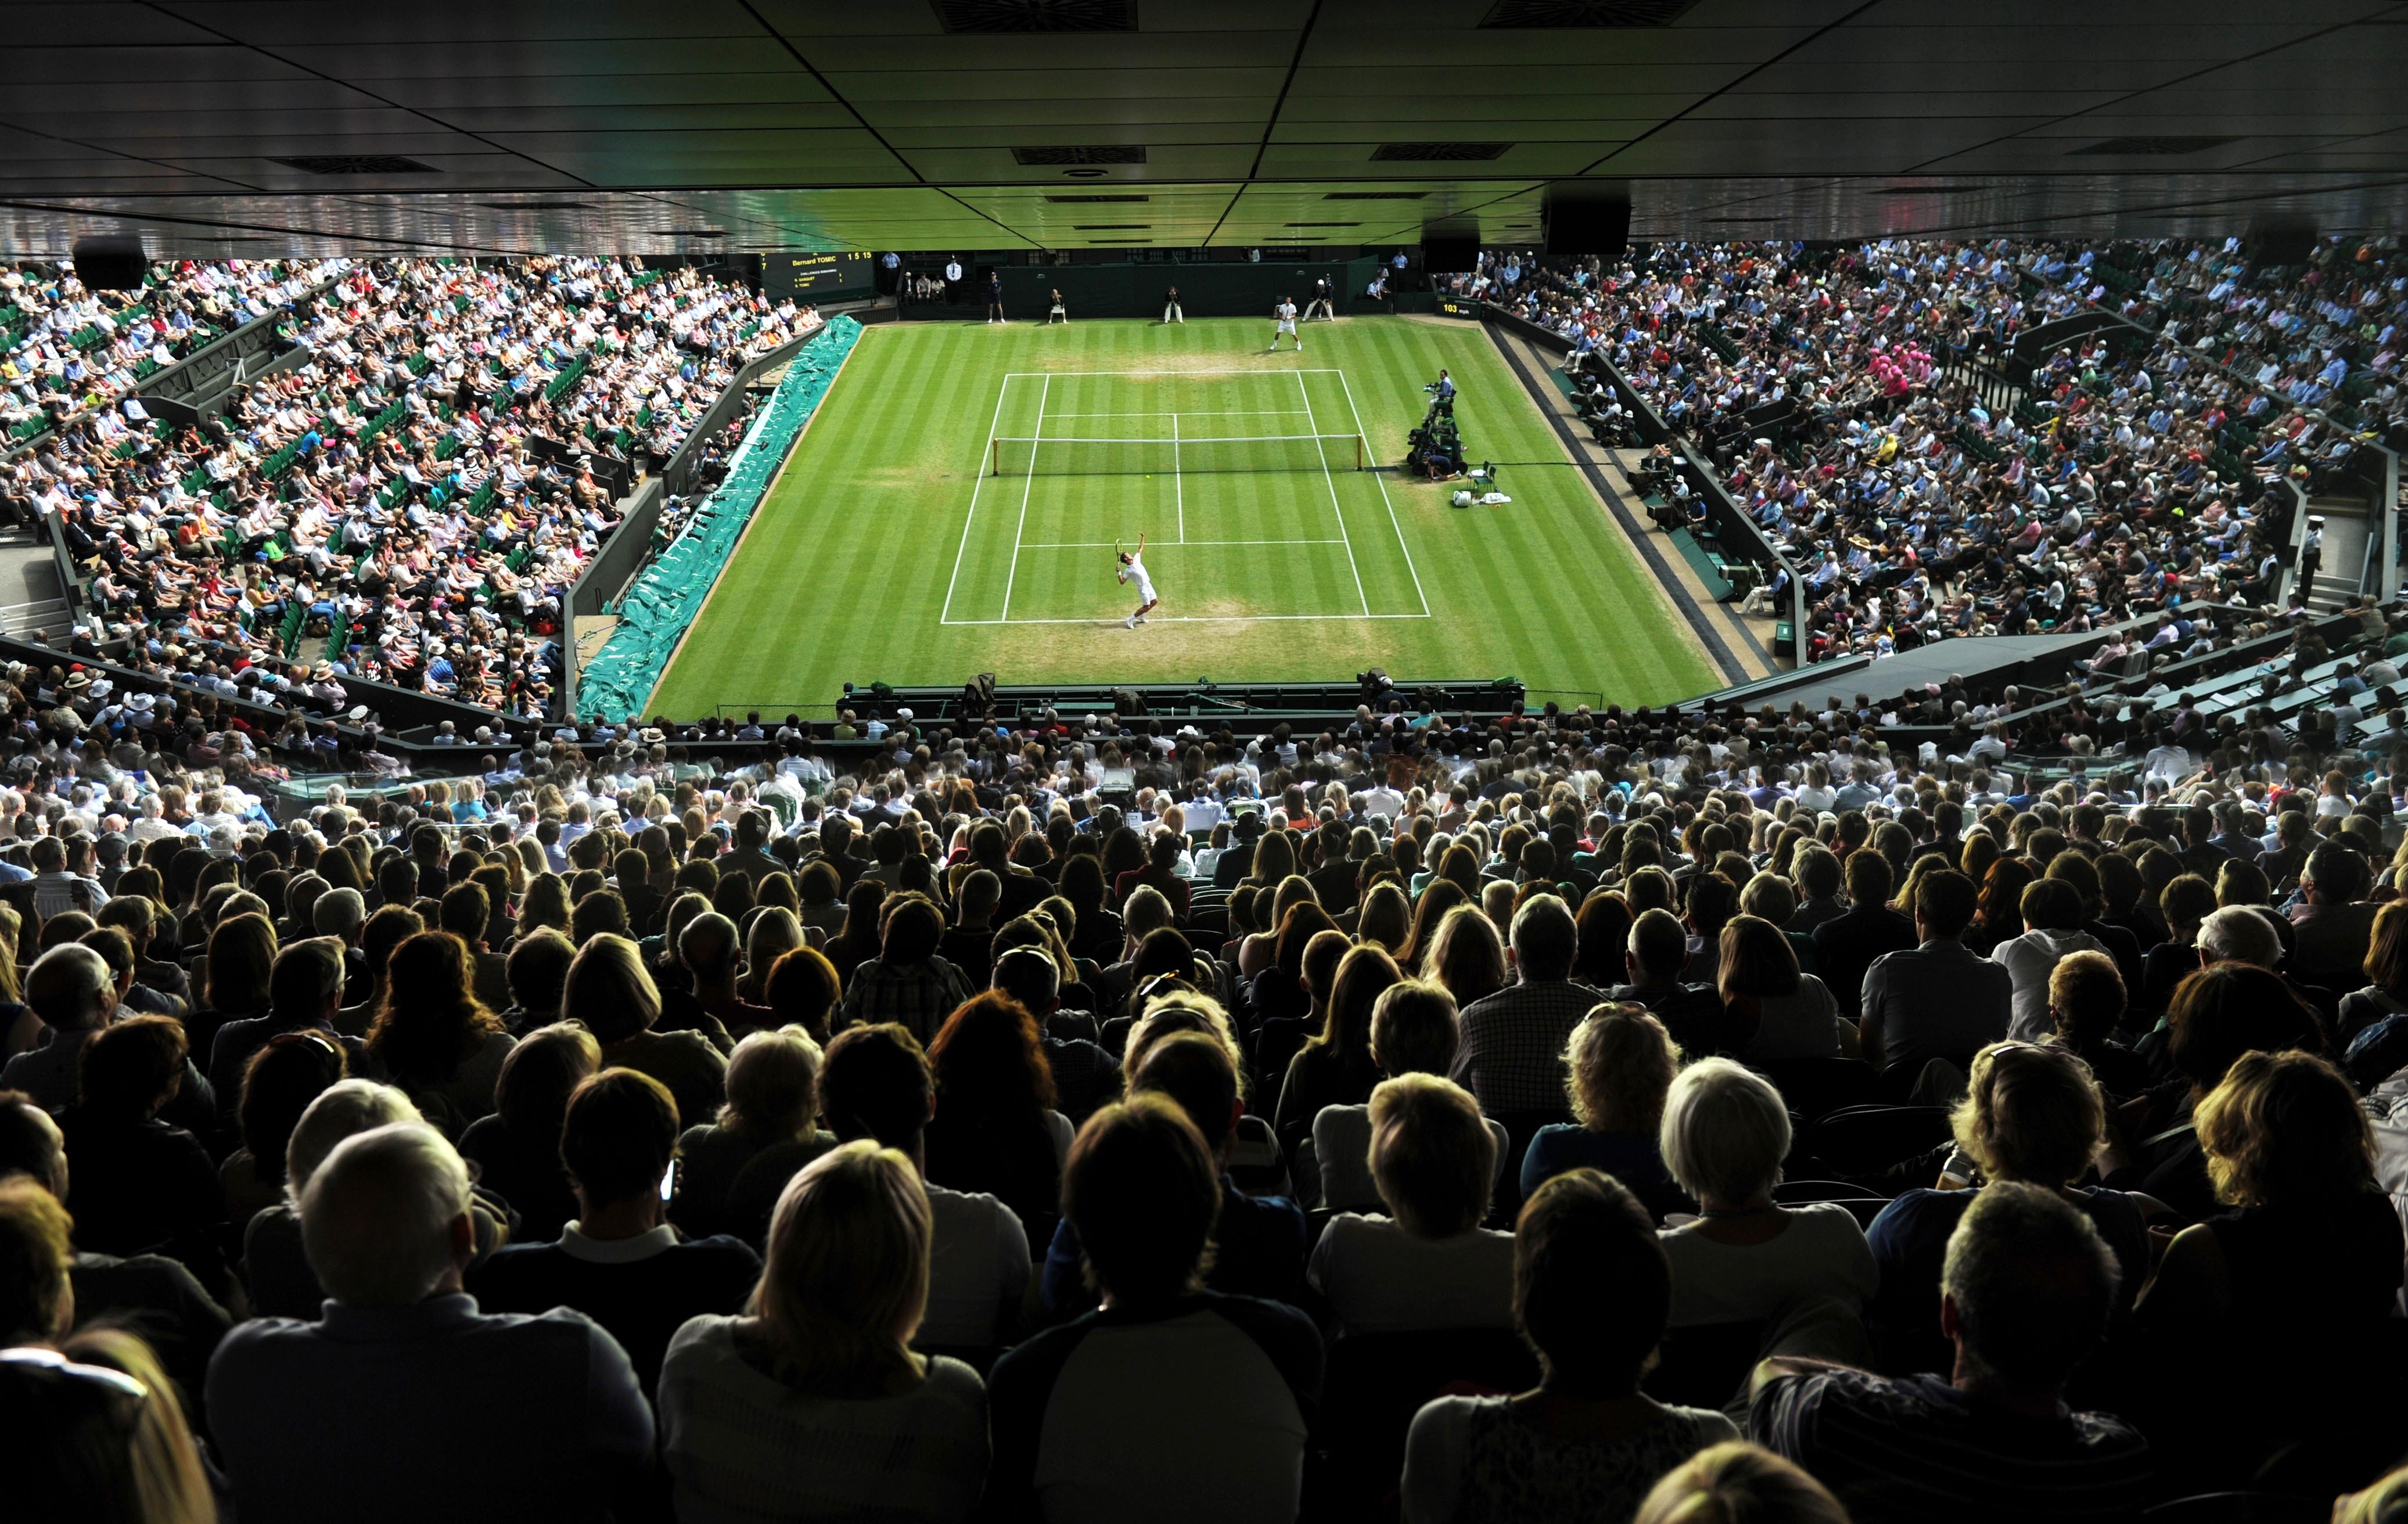 asian youth games_Wimbledon Debenture Tickets and Packages 2015